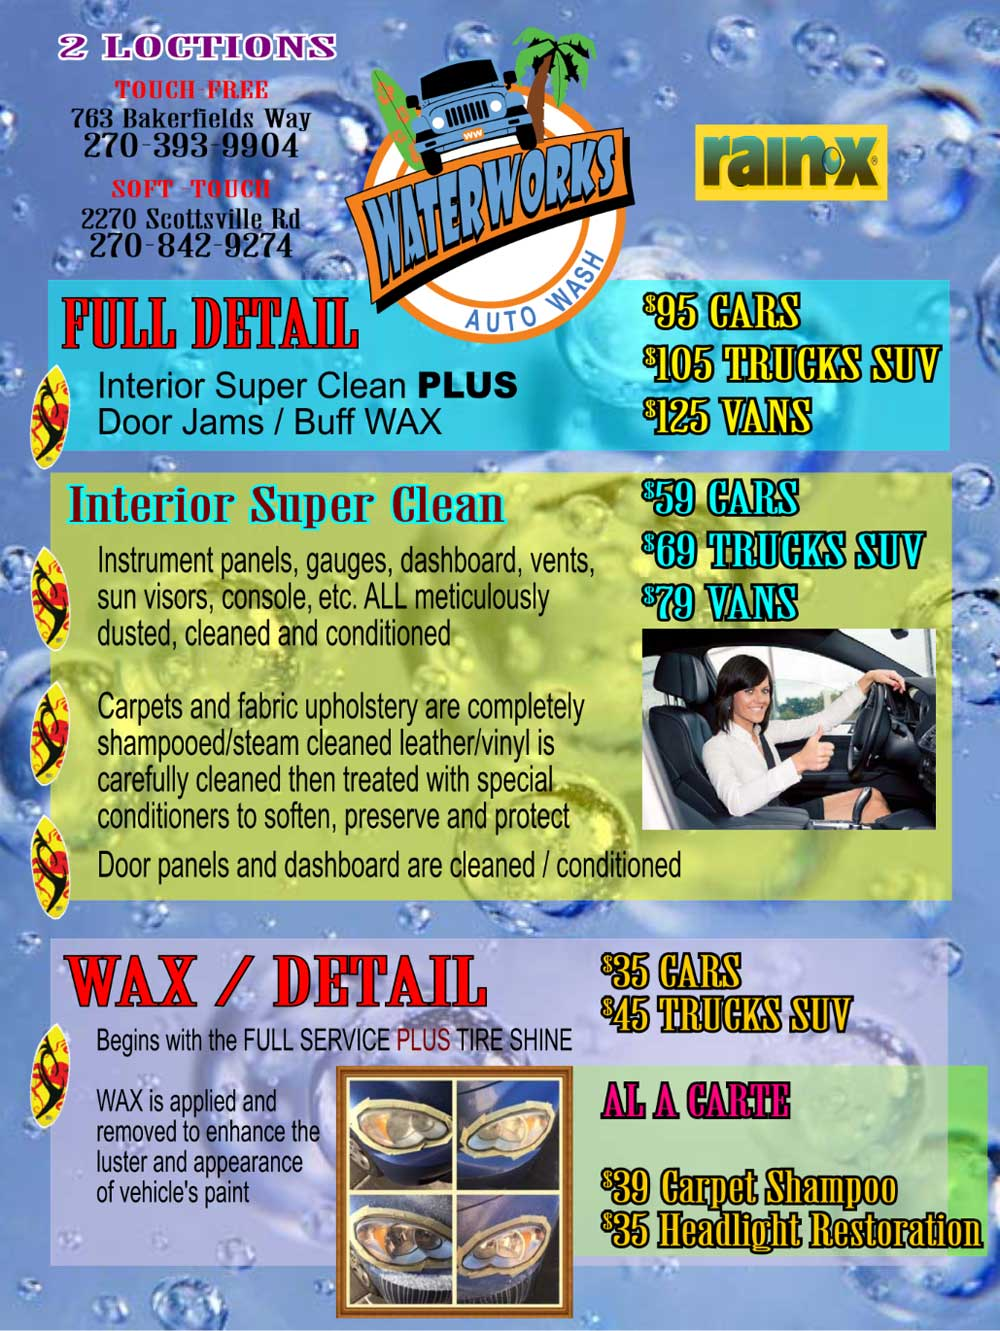 Best Car Wash In Bowling Green Ky